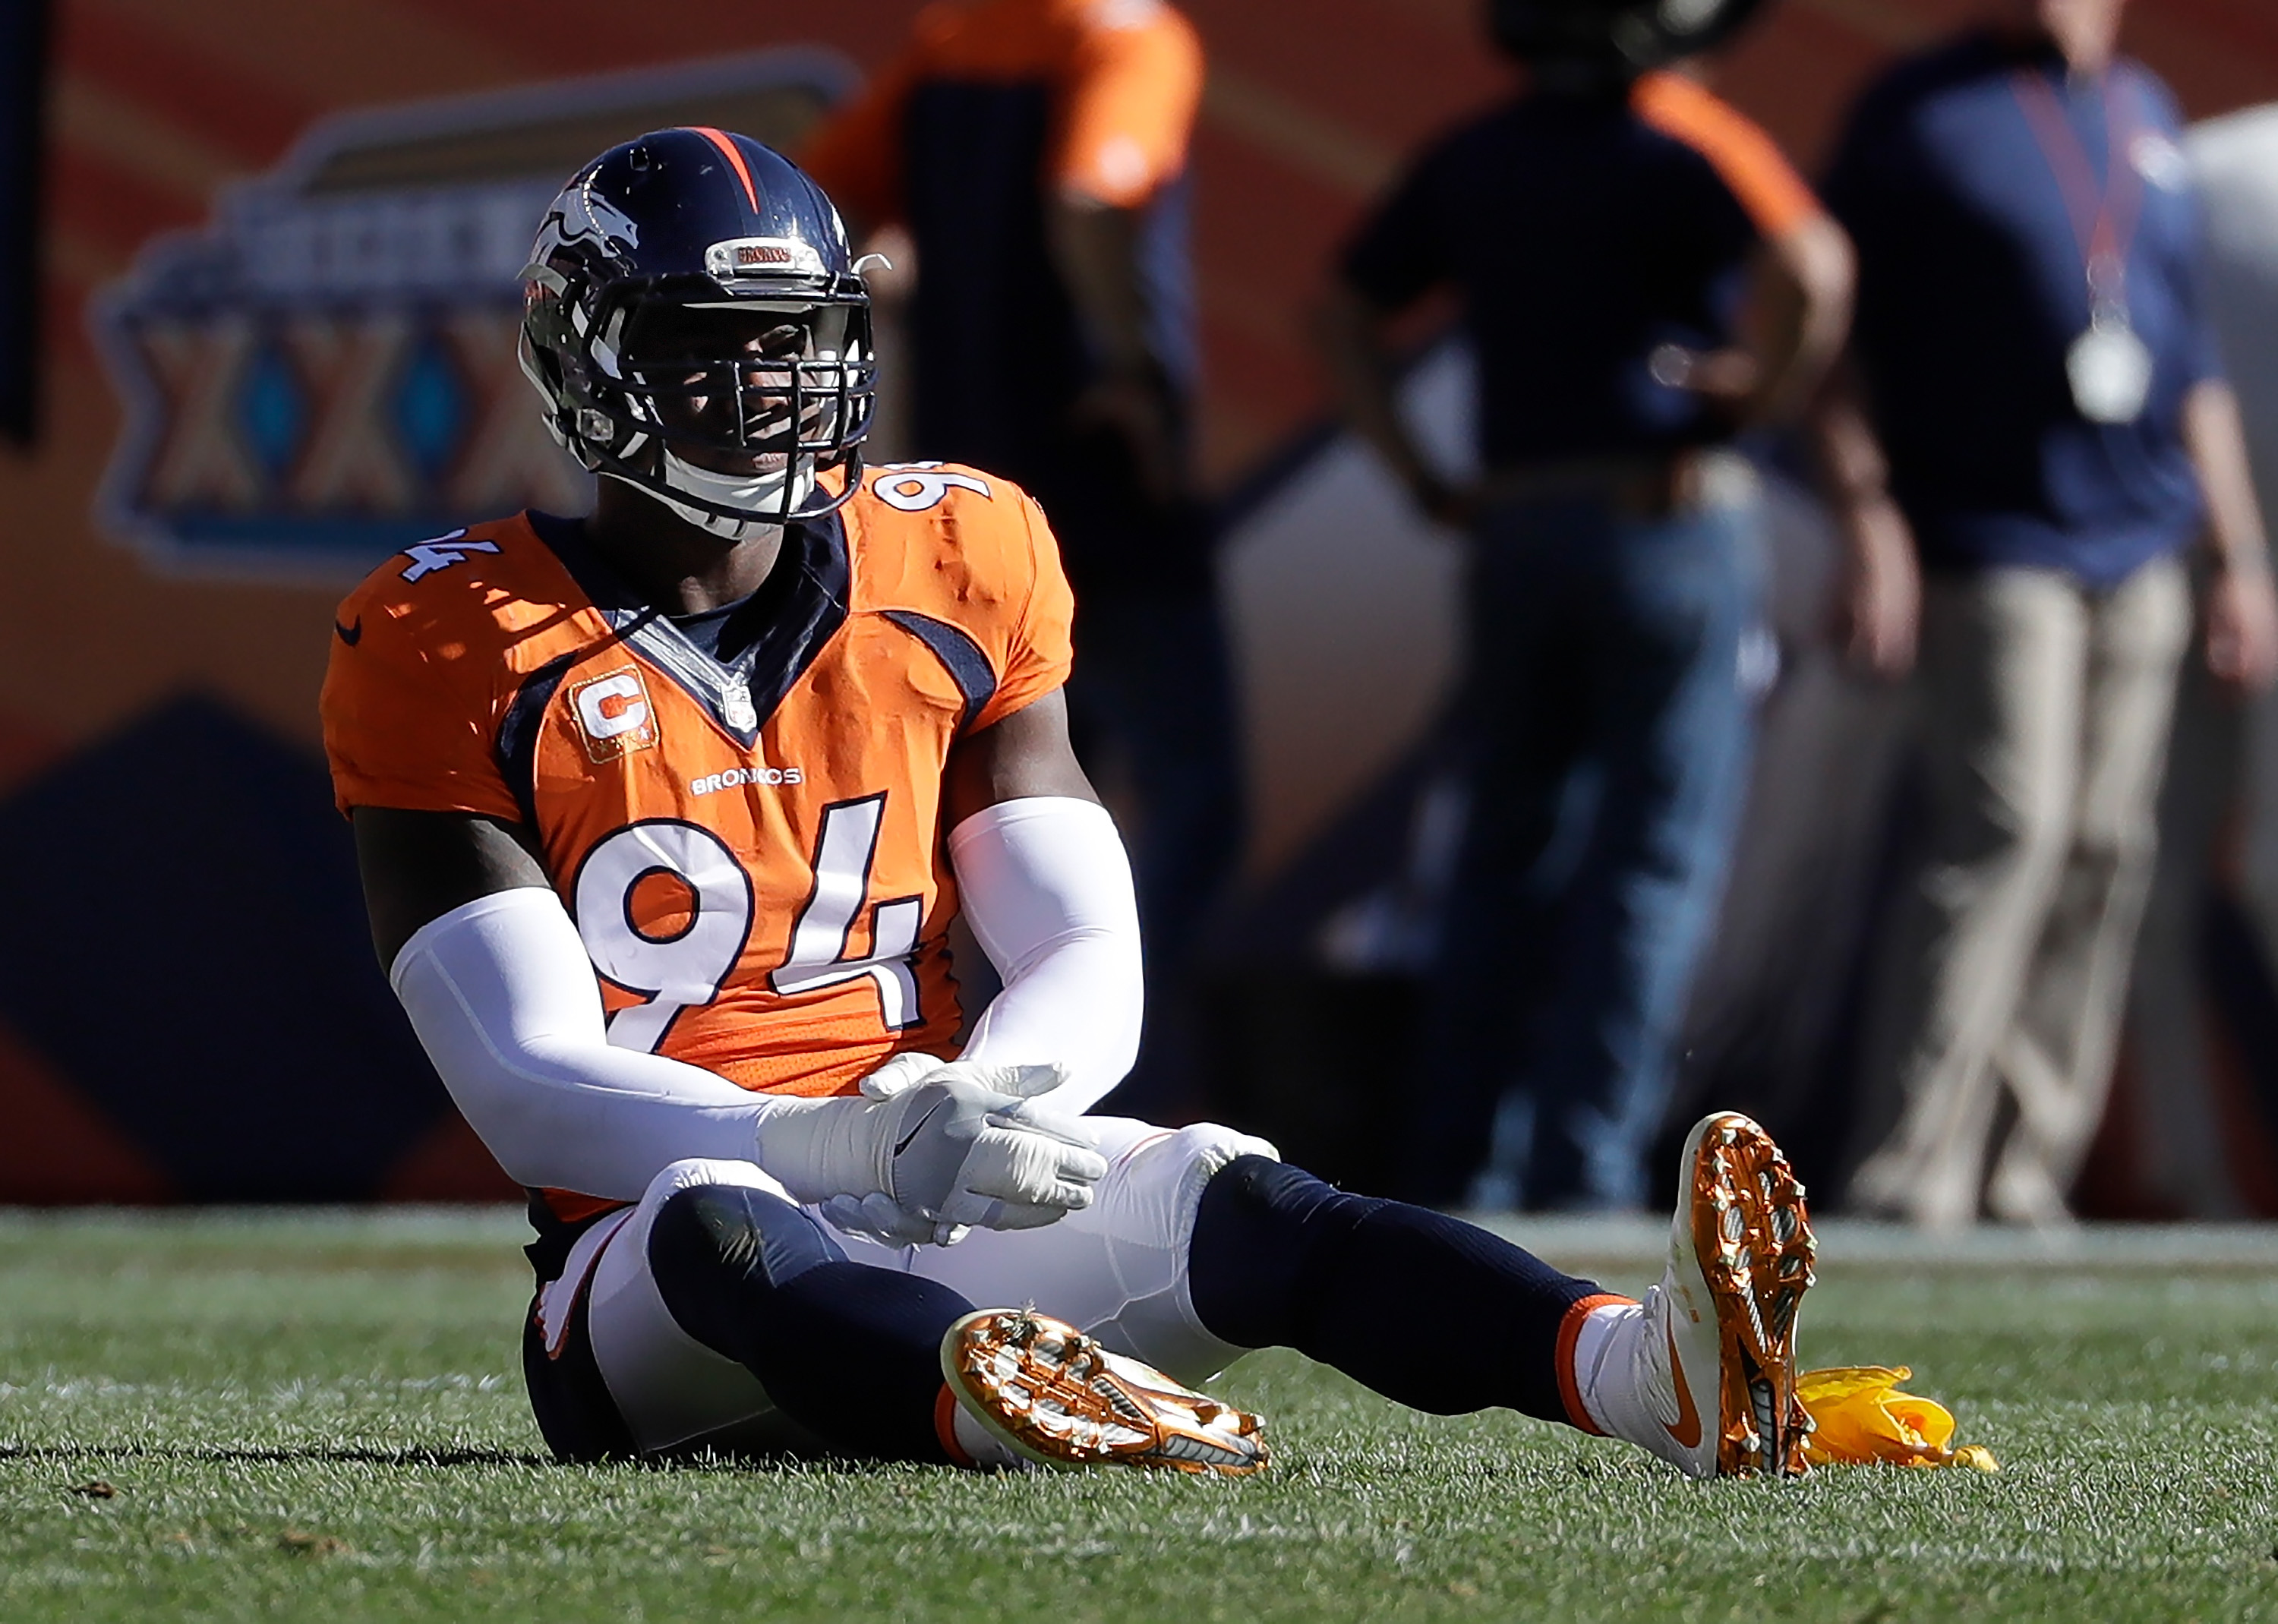 Denver Broncos outside linebacker DeMarcus Ware holds his right arm after injuring it against the Indianapolis Colts during the second half in a NFL football game, Sunday, Sept. 18, 2016, in Denver. (AP Photo/Jack Dempsey)